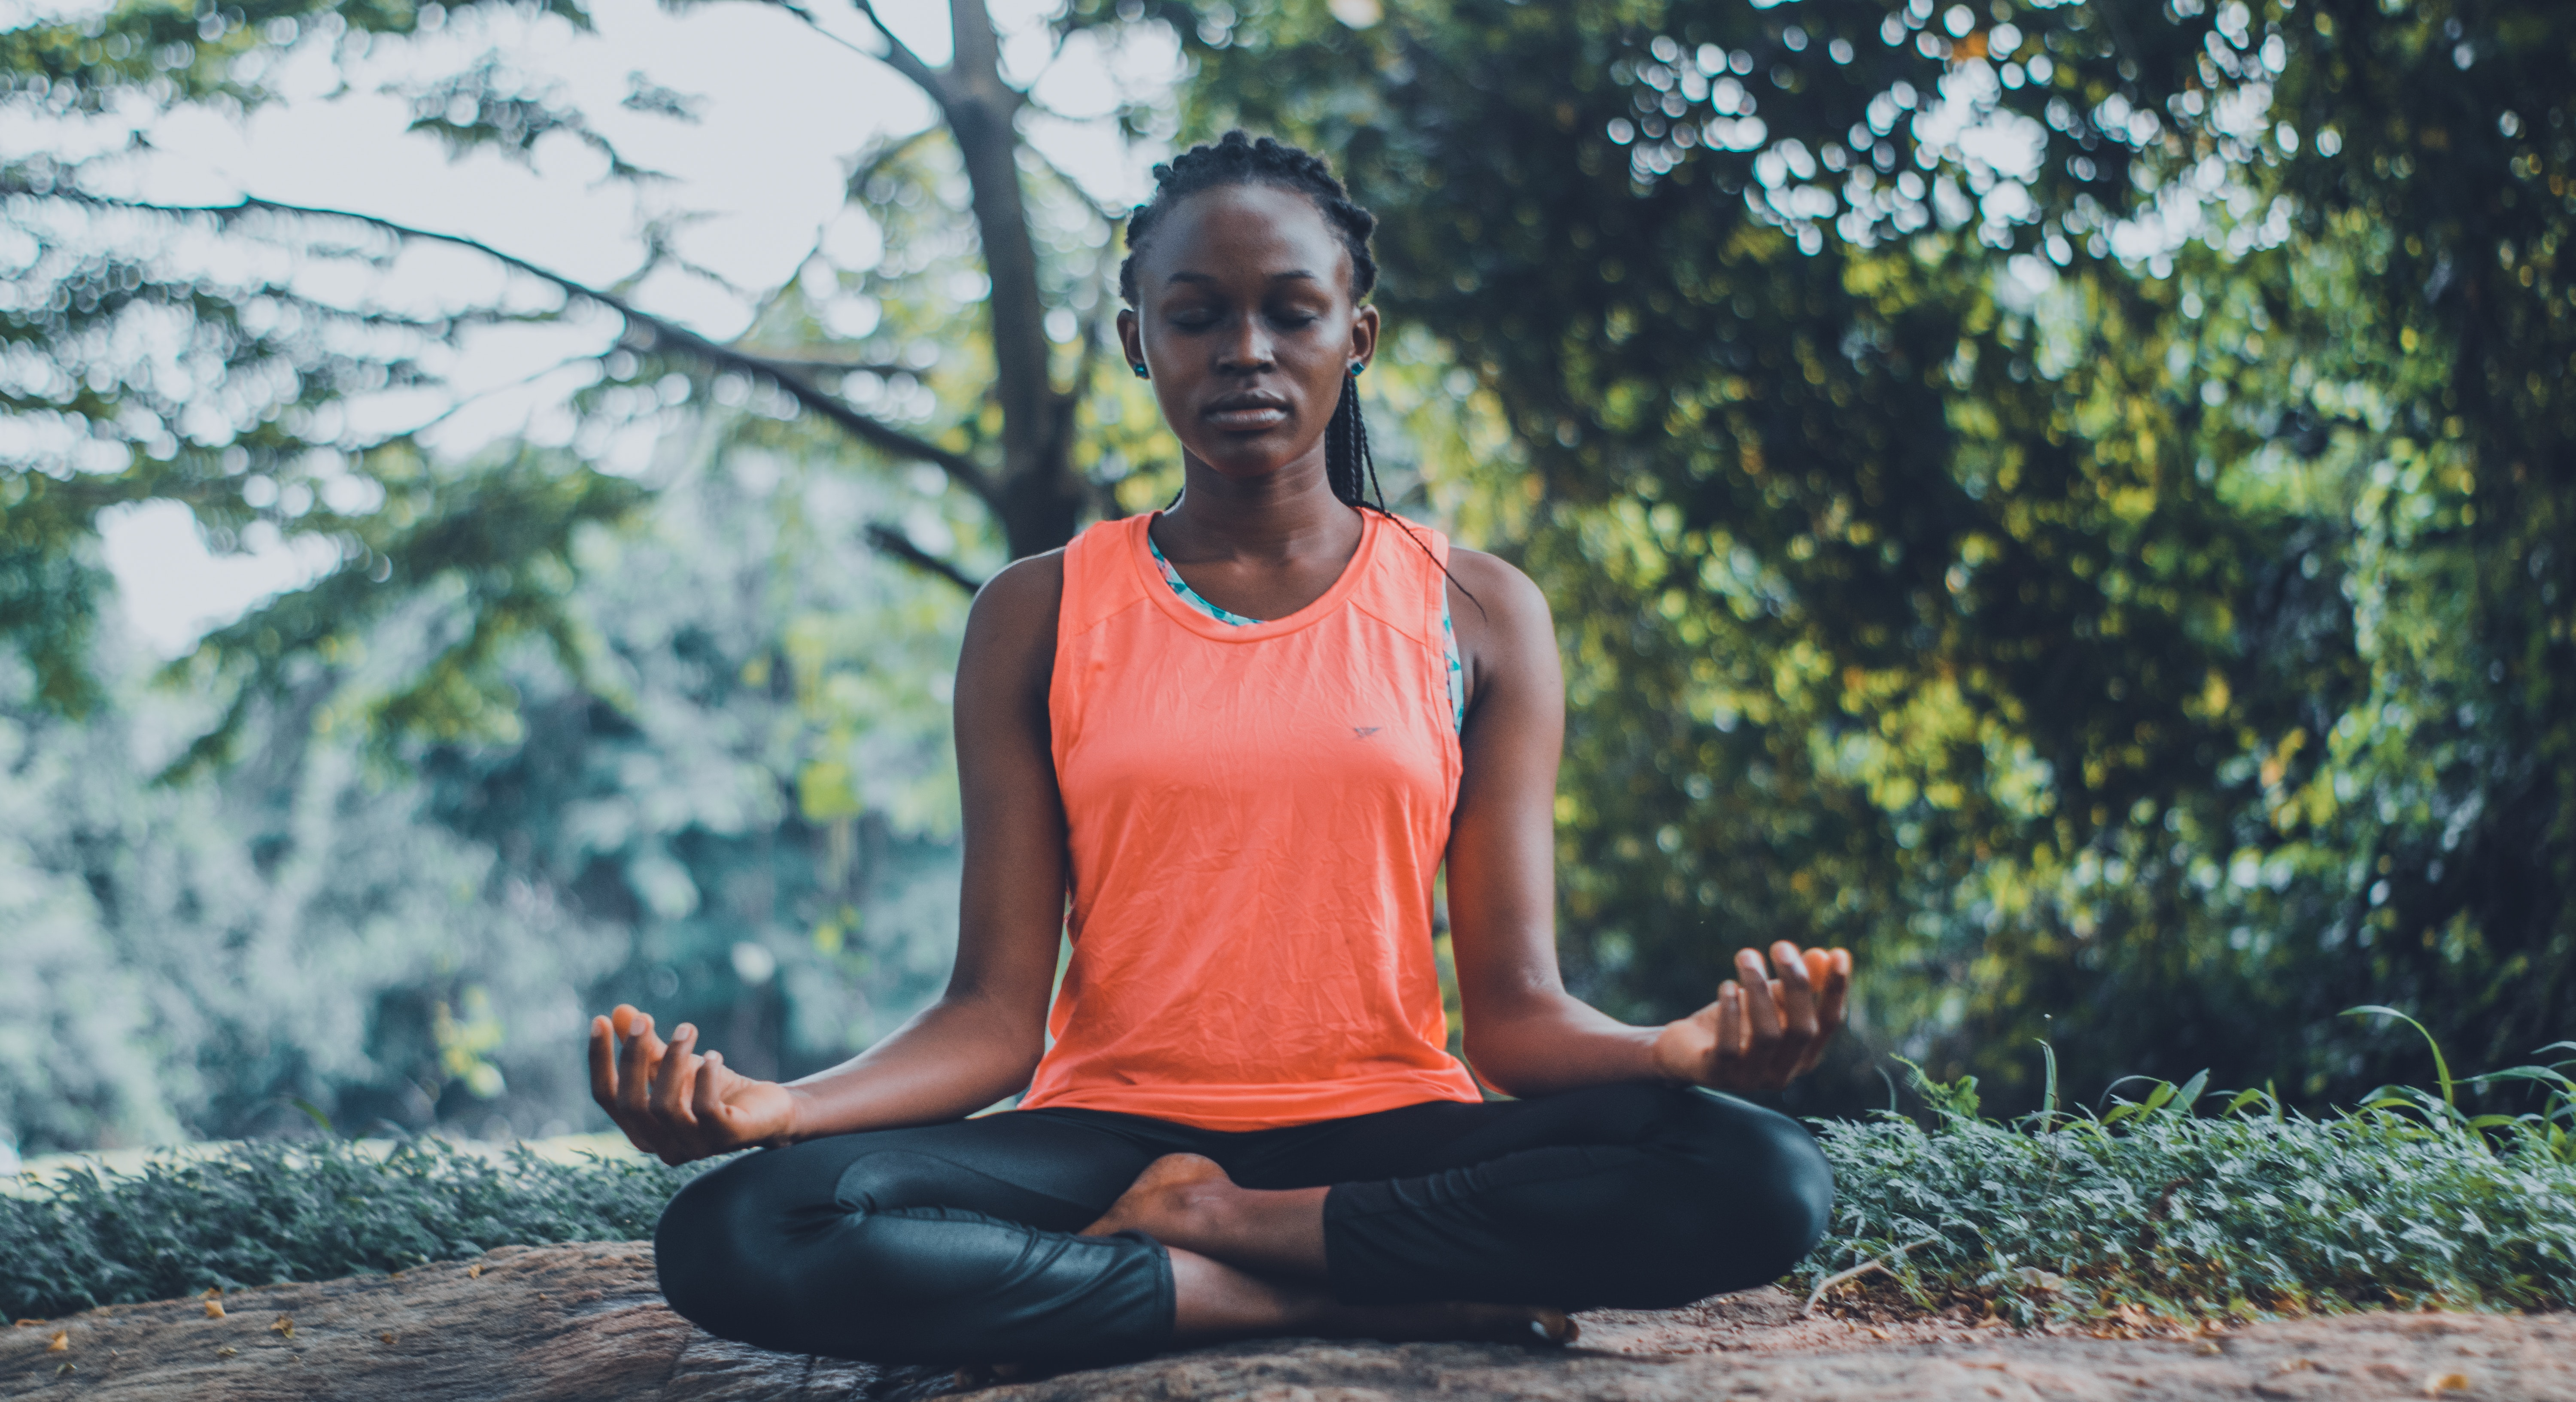 5 Tips To Help You Stick With Your Meditation Practice